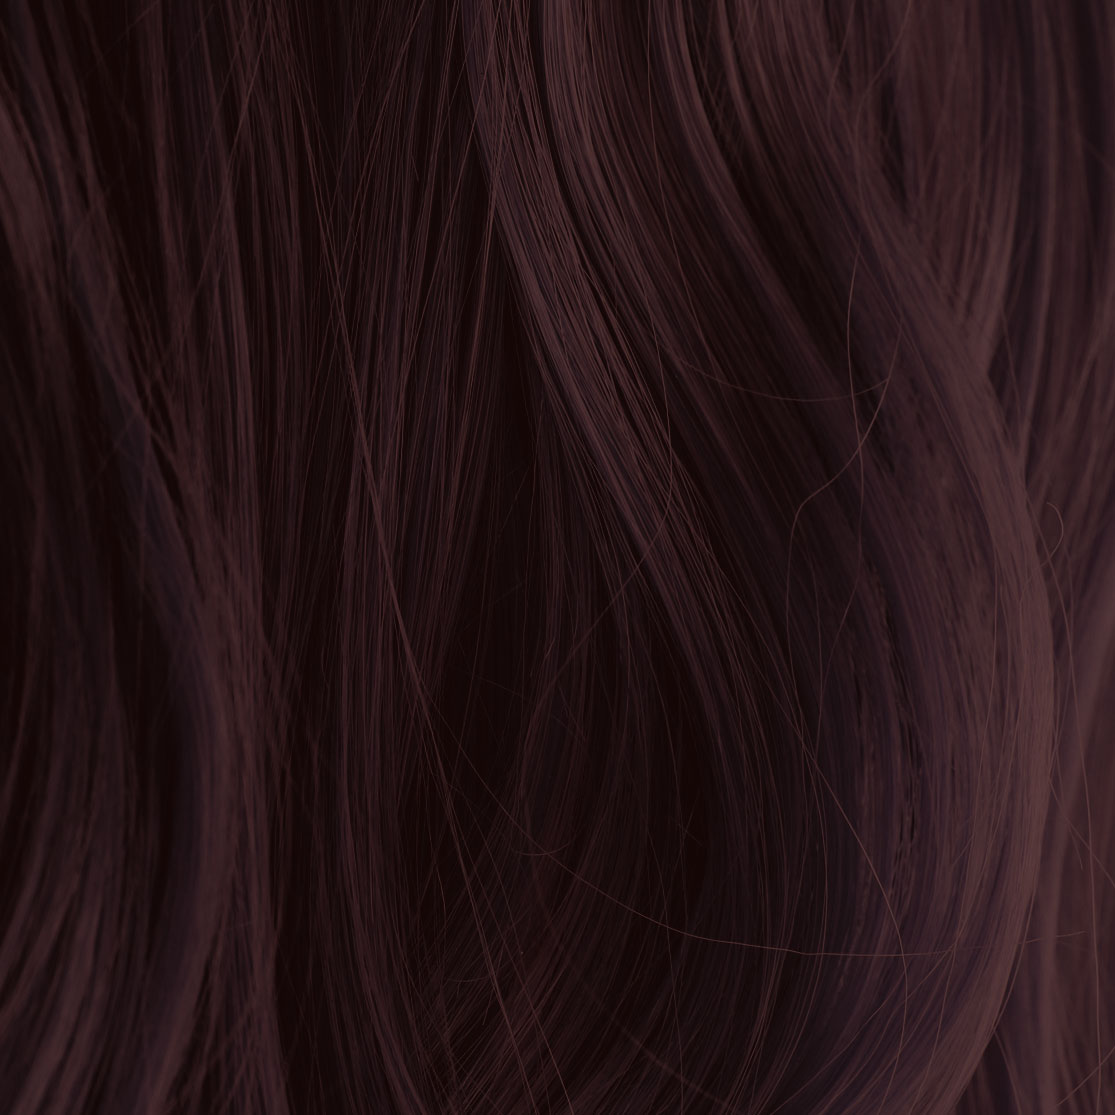 Mahogany Henna Hair Dye Henna Color Lab Henna Hair Dye